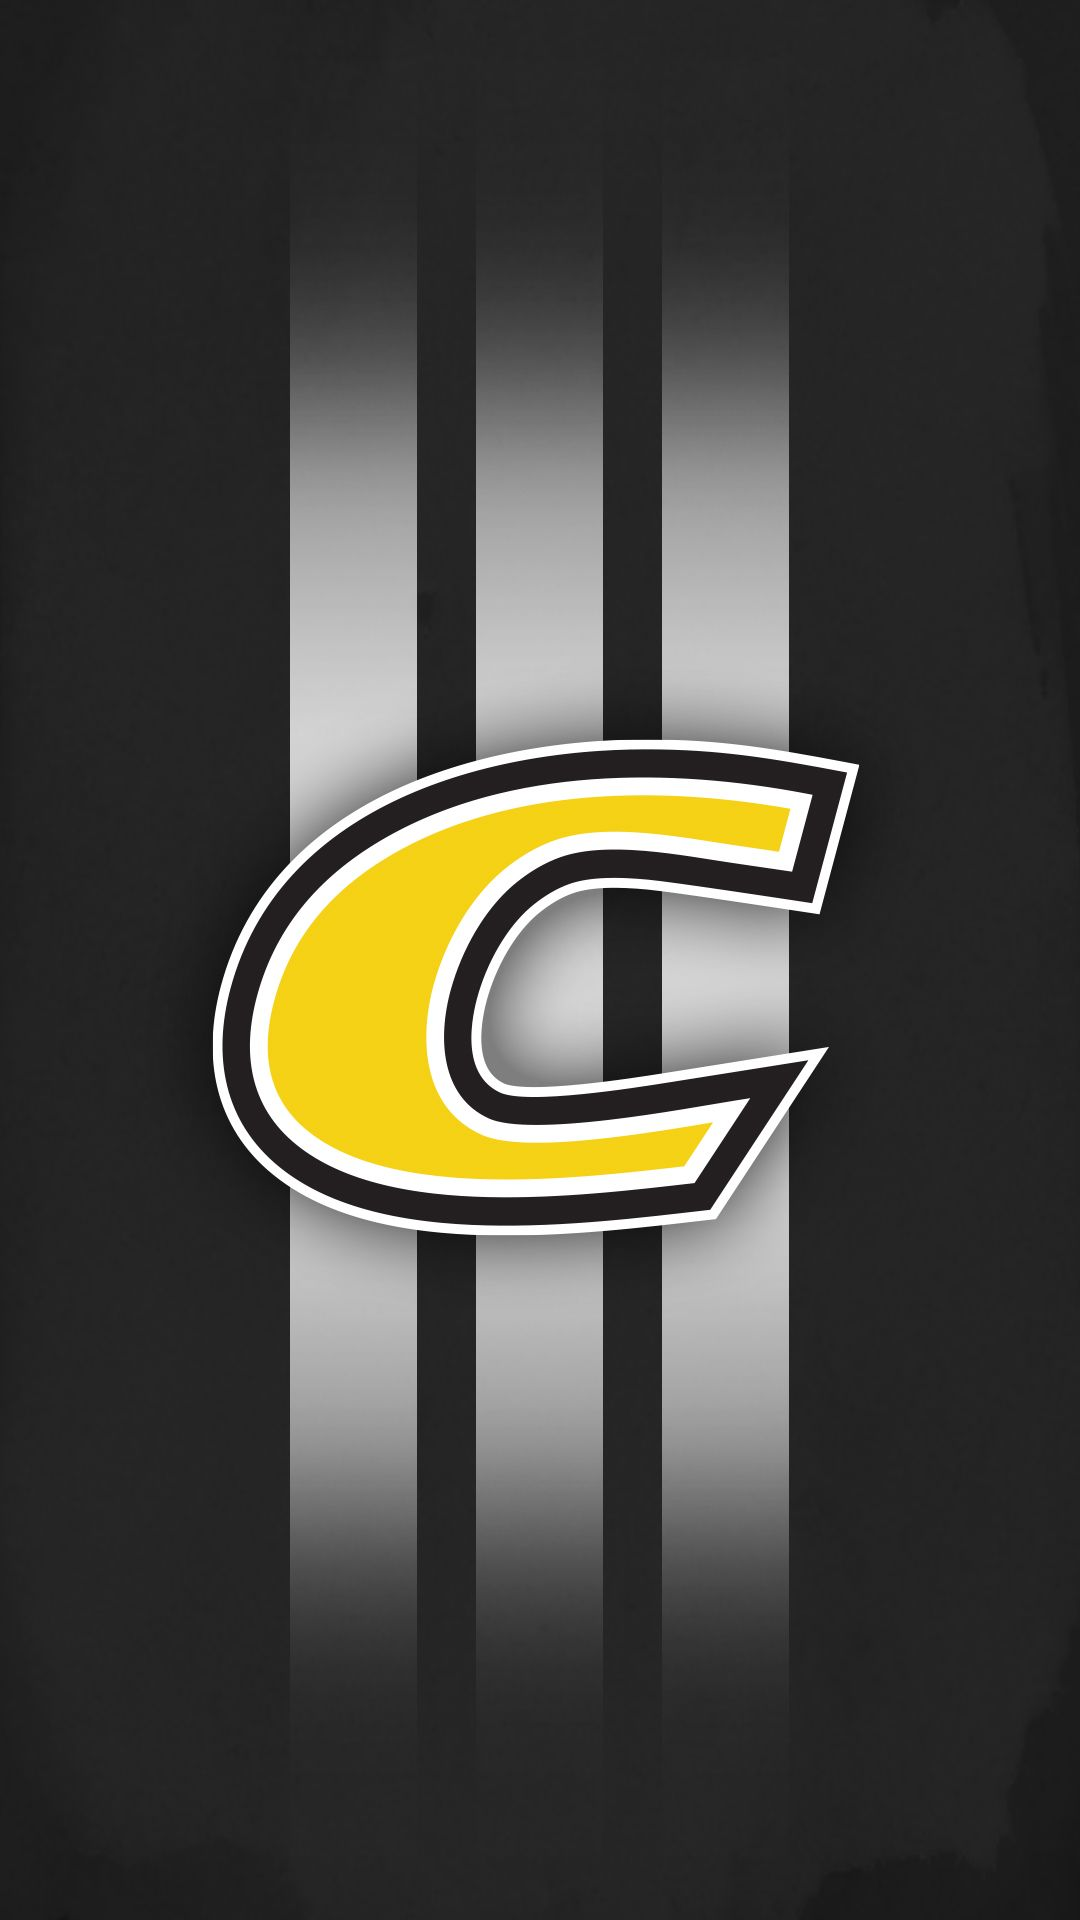 1080x1920 Wallpapers & Posters - Centre College Athletics